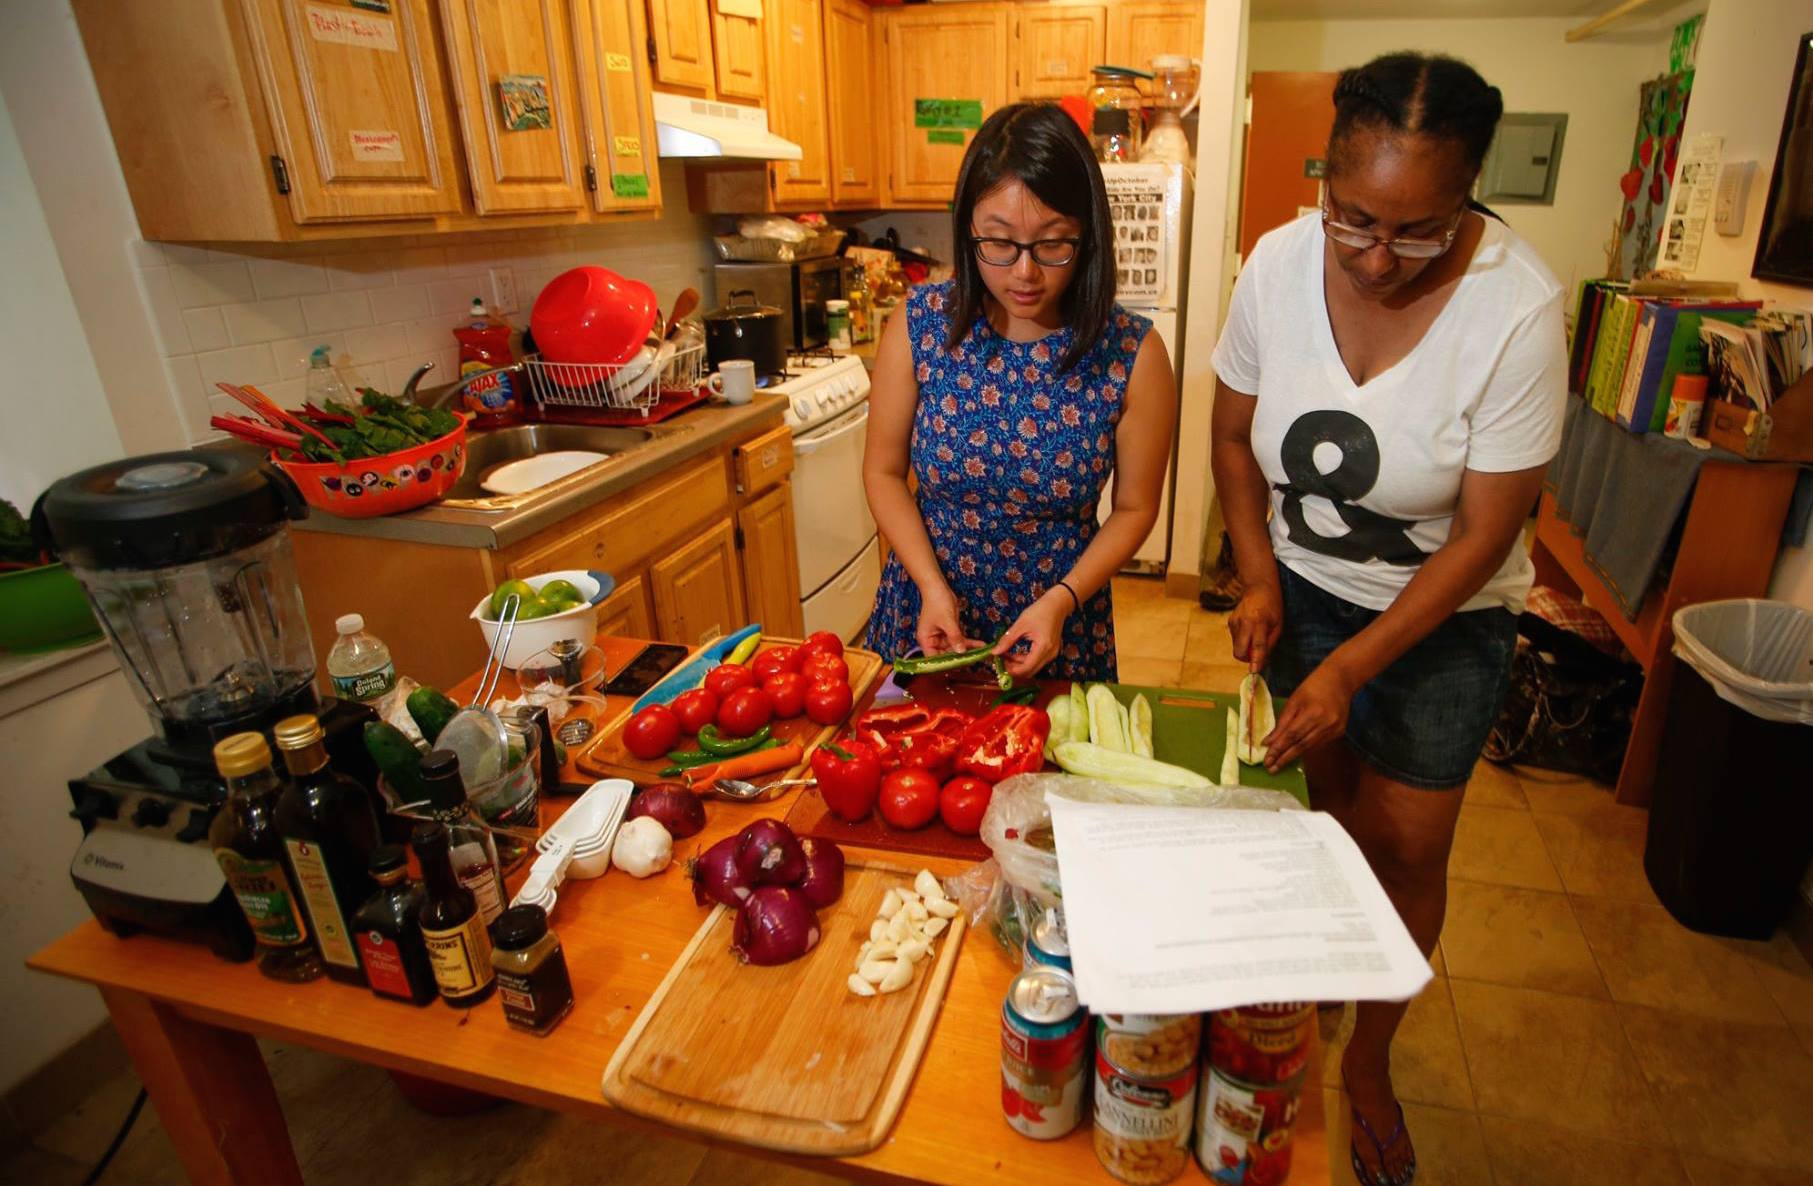 """Cooking Through the Diaspora"" ongoing work around identity, self-determination, and decolonization through cooking practices and the exploration of modern-day food culture. (photograph by Ricky Flores, 2016)"